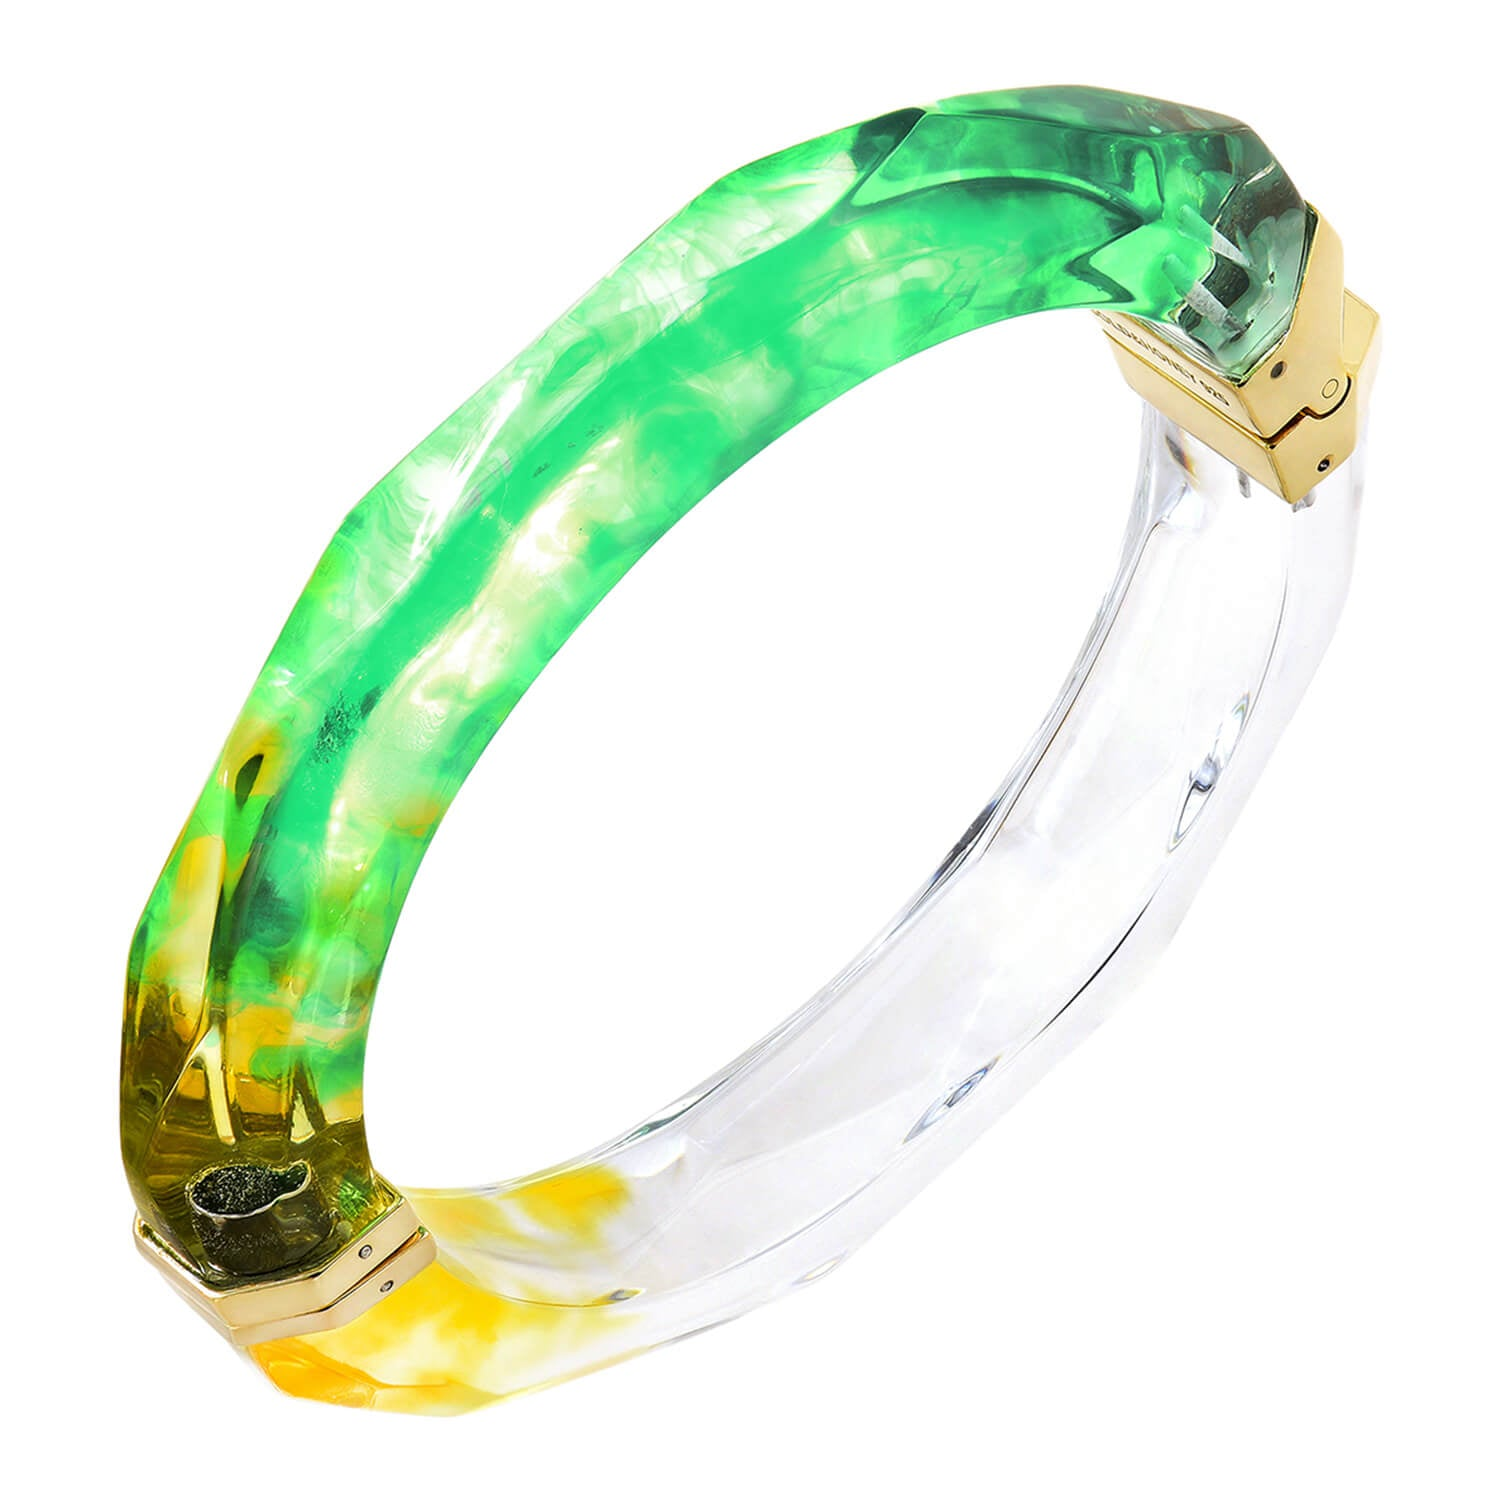 Tie Dye Bangle in Green & Yellow